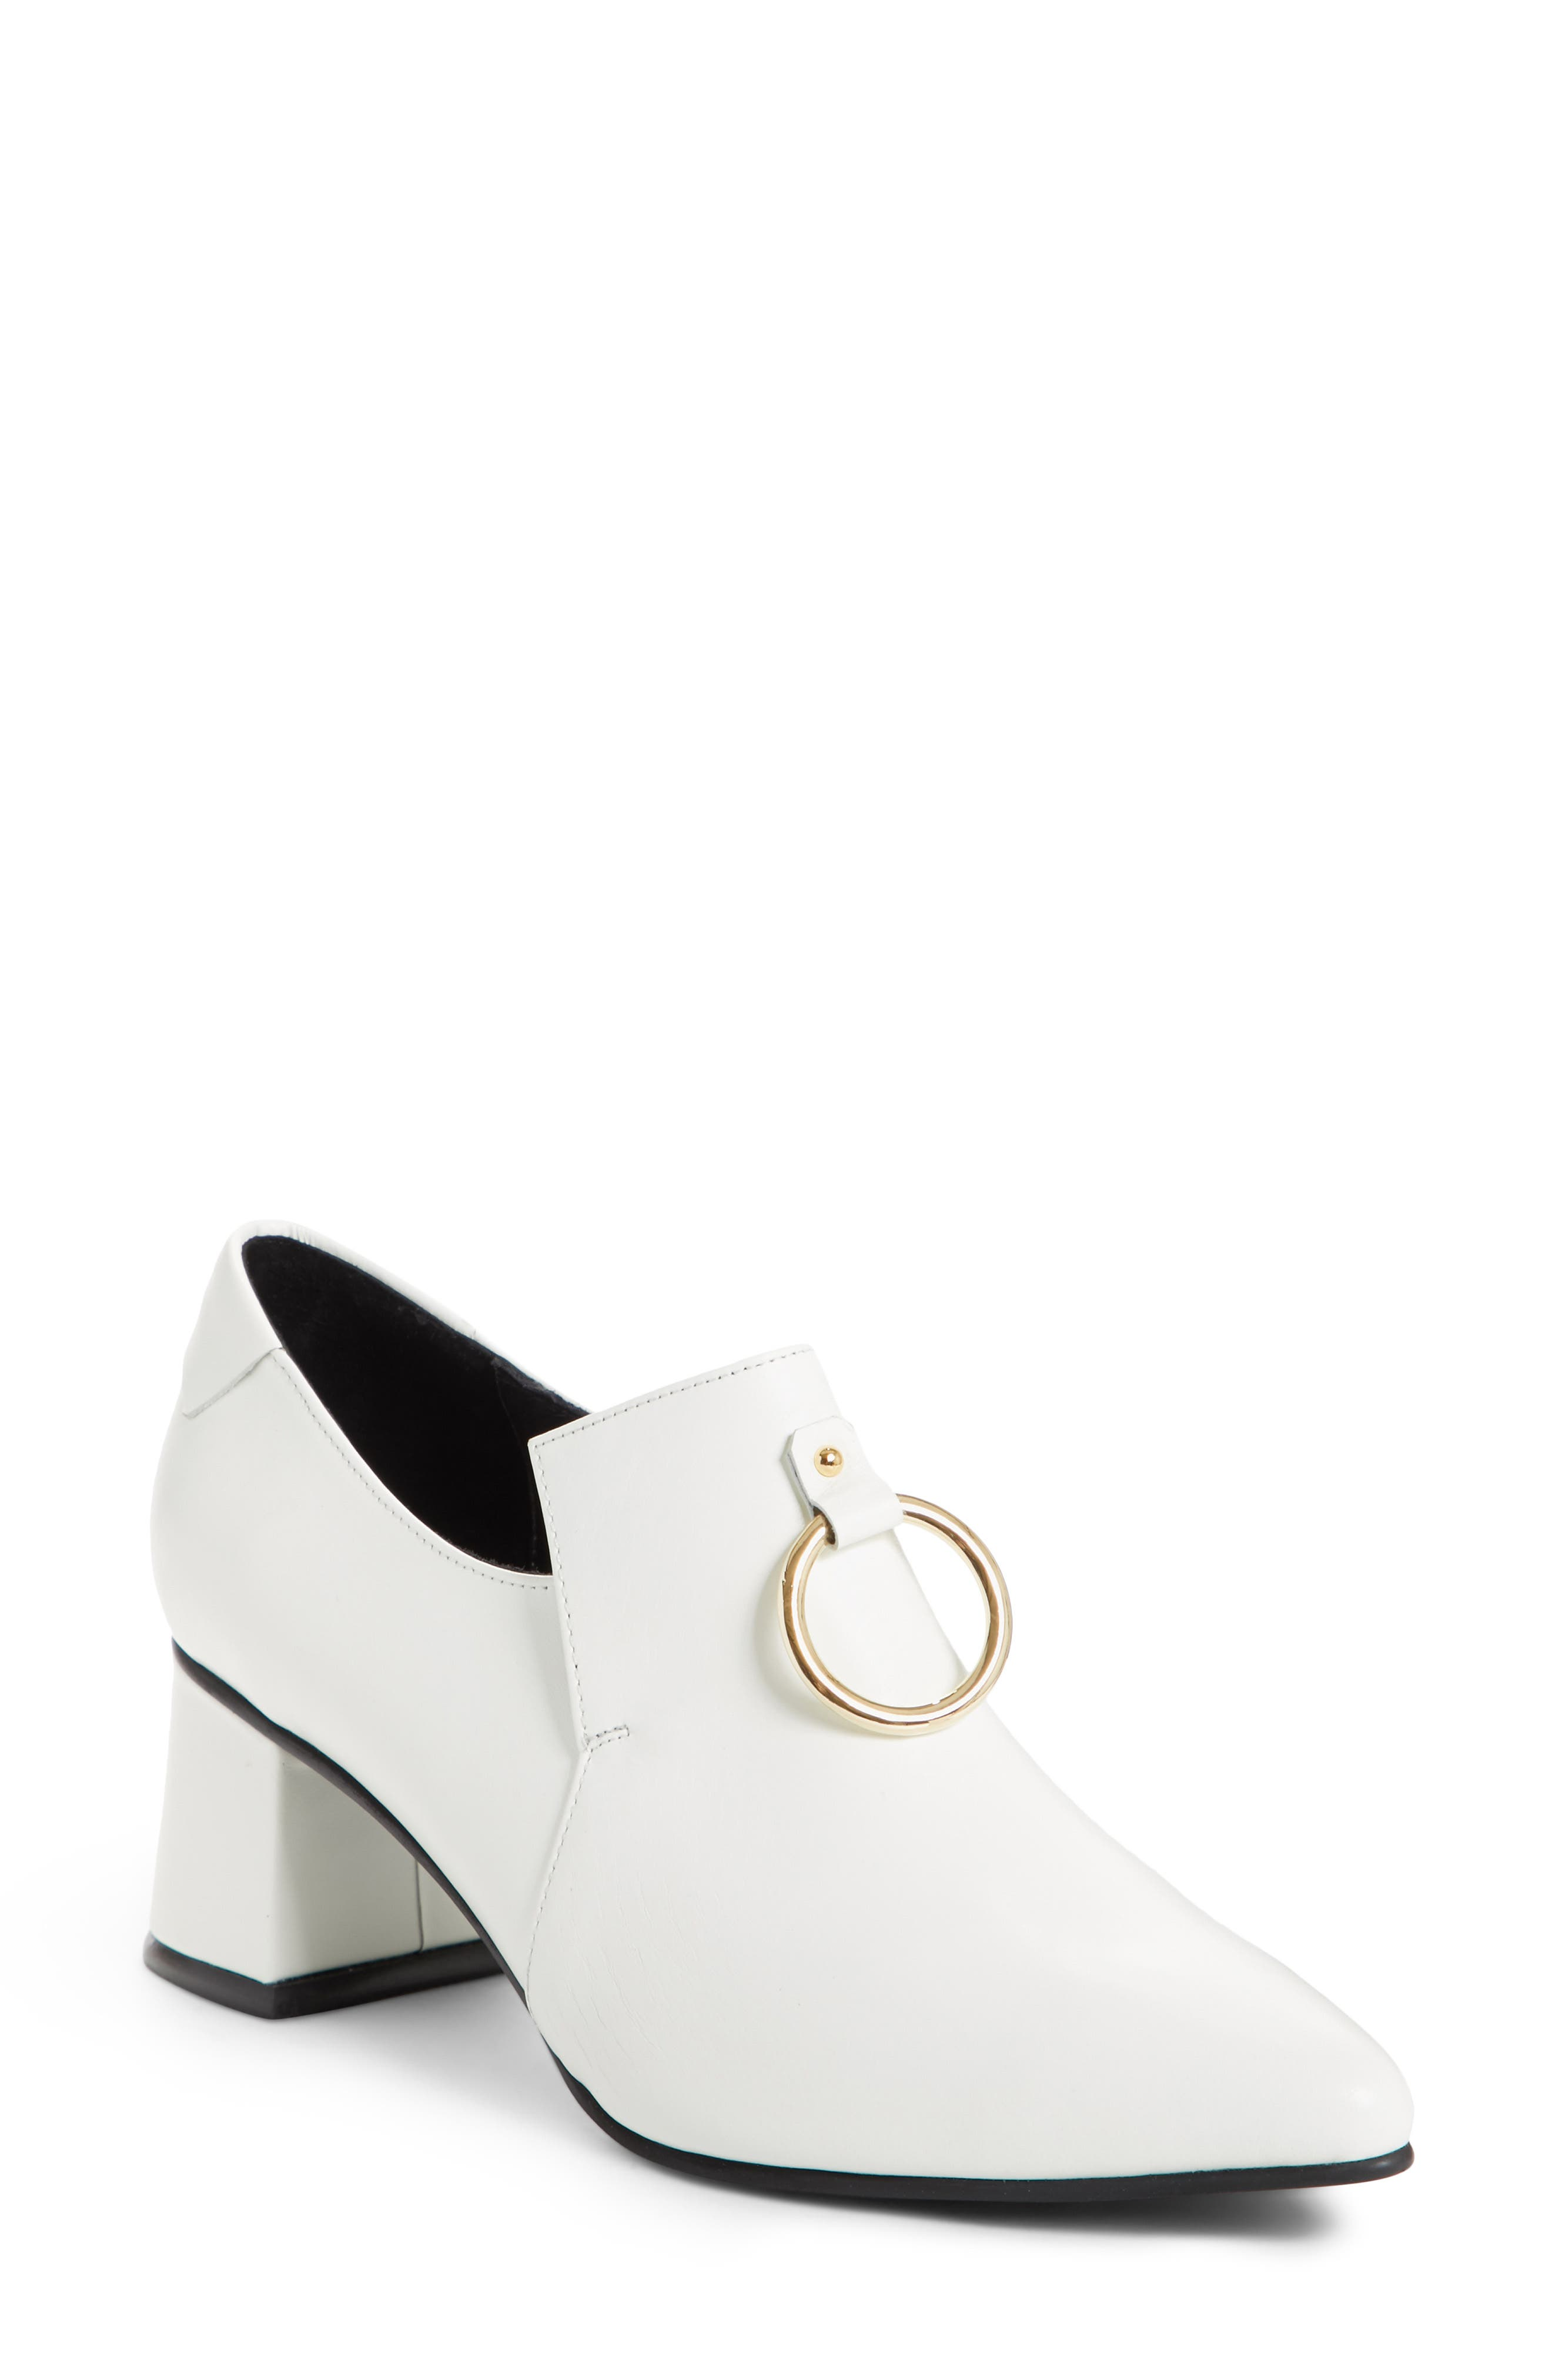 Ring Middle Loafer Pump,                         Main,                         color, White